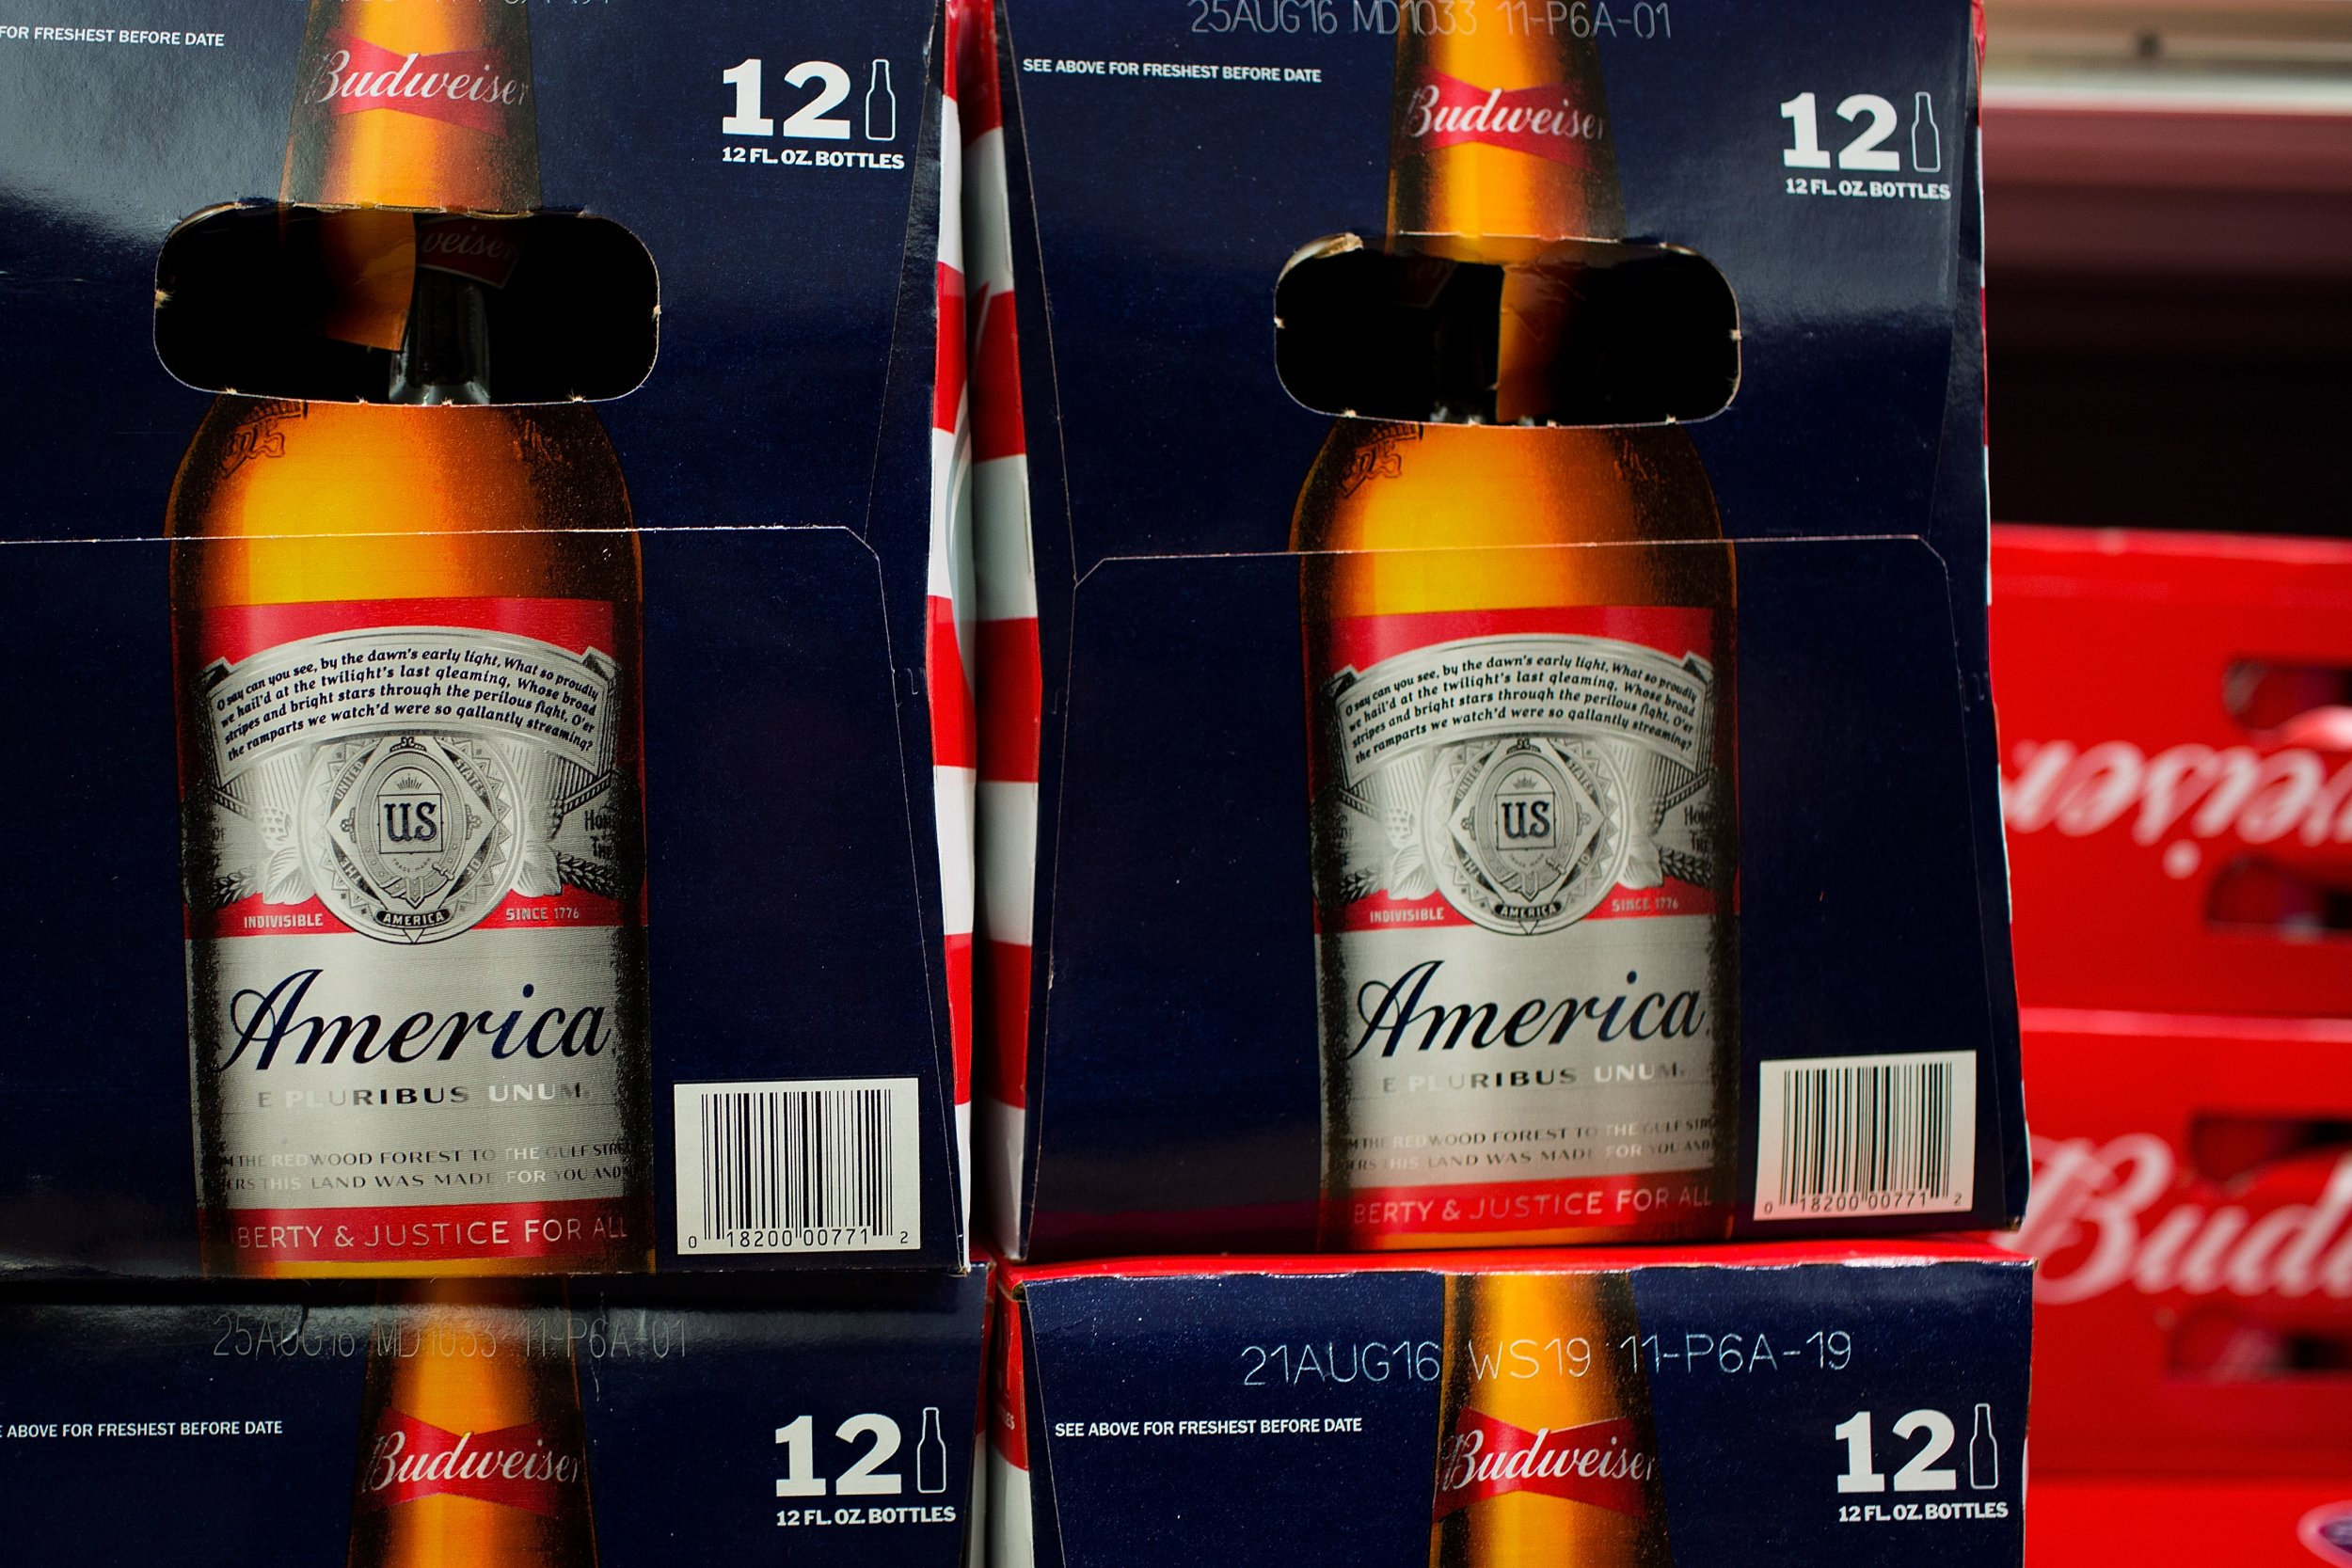 Budweiser is sending barley to Mars to make outer space beer for humans